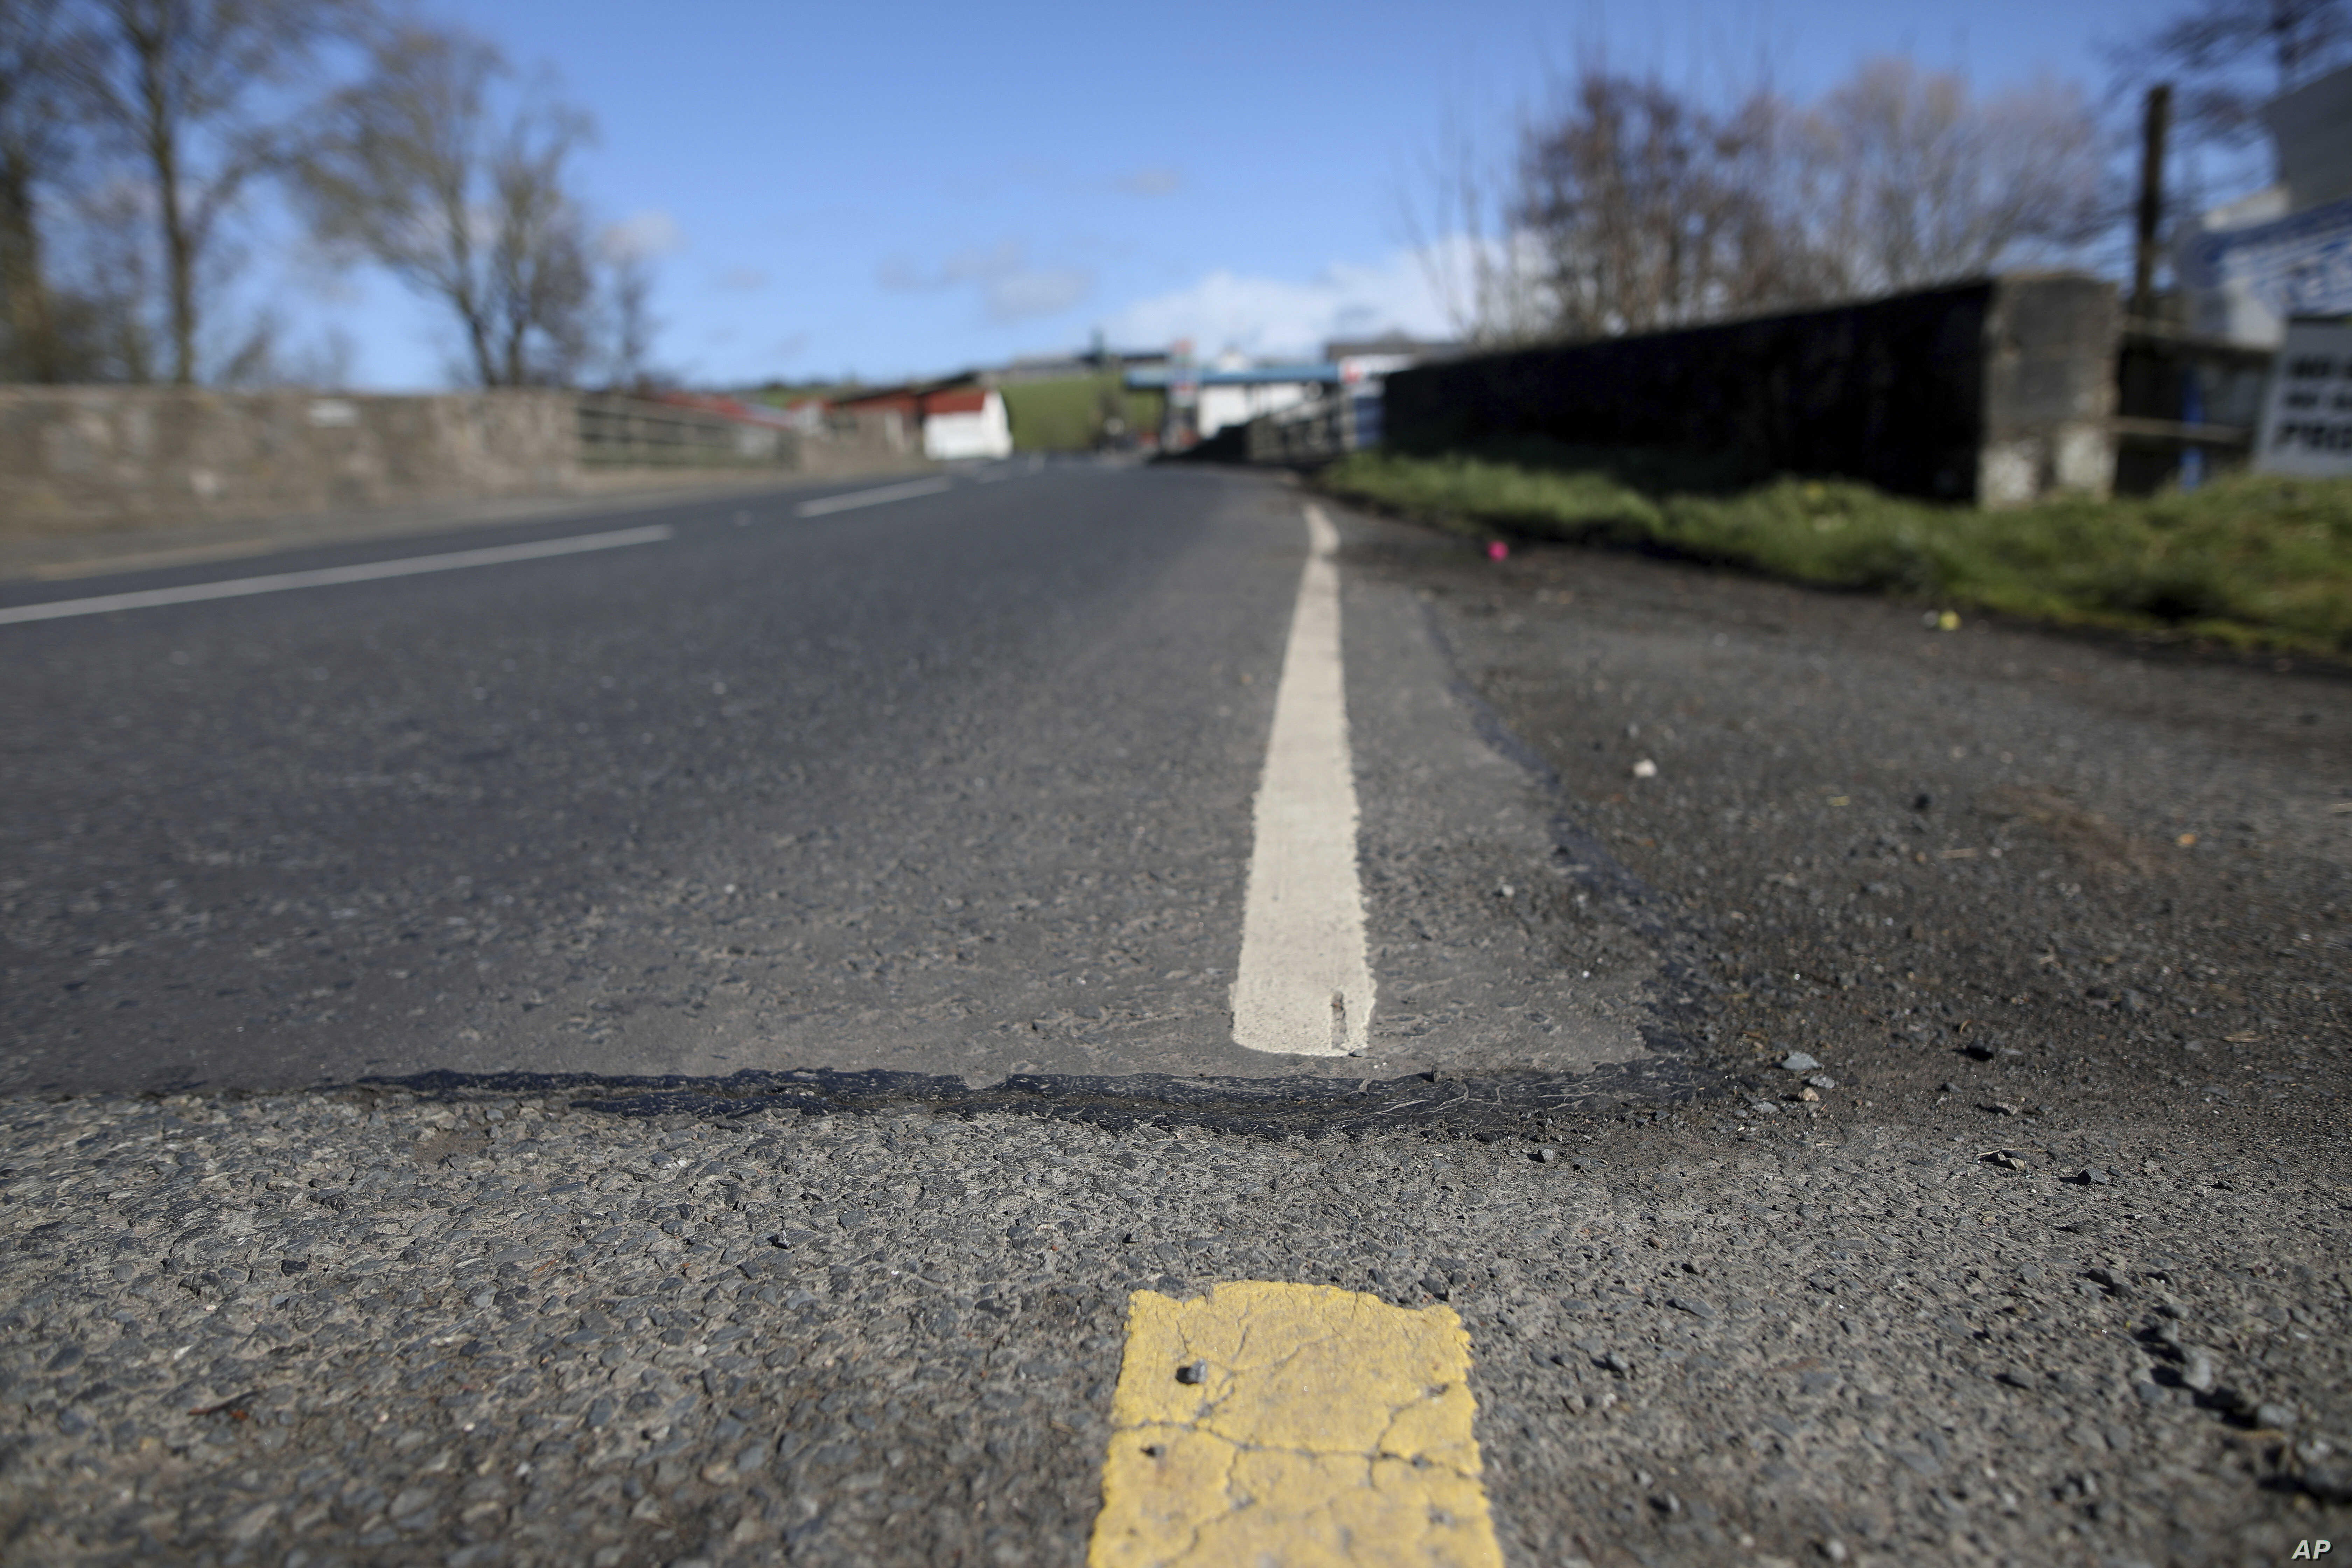 The Irish border, near the town of Middletown, Northern Ireland, March, 12, 2019. All that marks the border crossing is the change in paint and a cut in the tarmac, with white paint being in Northern Ireland and yellow paint used in the Republic of I...